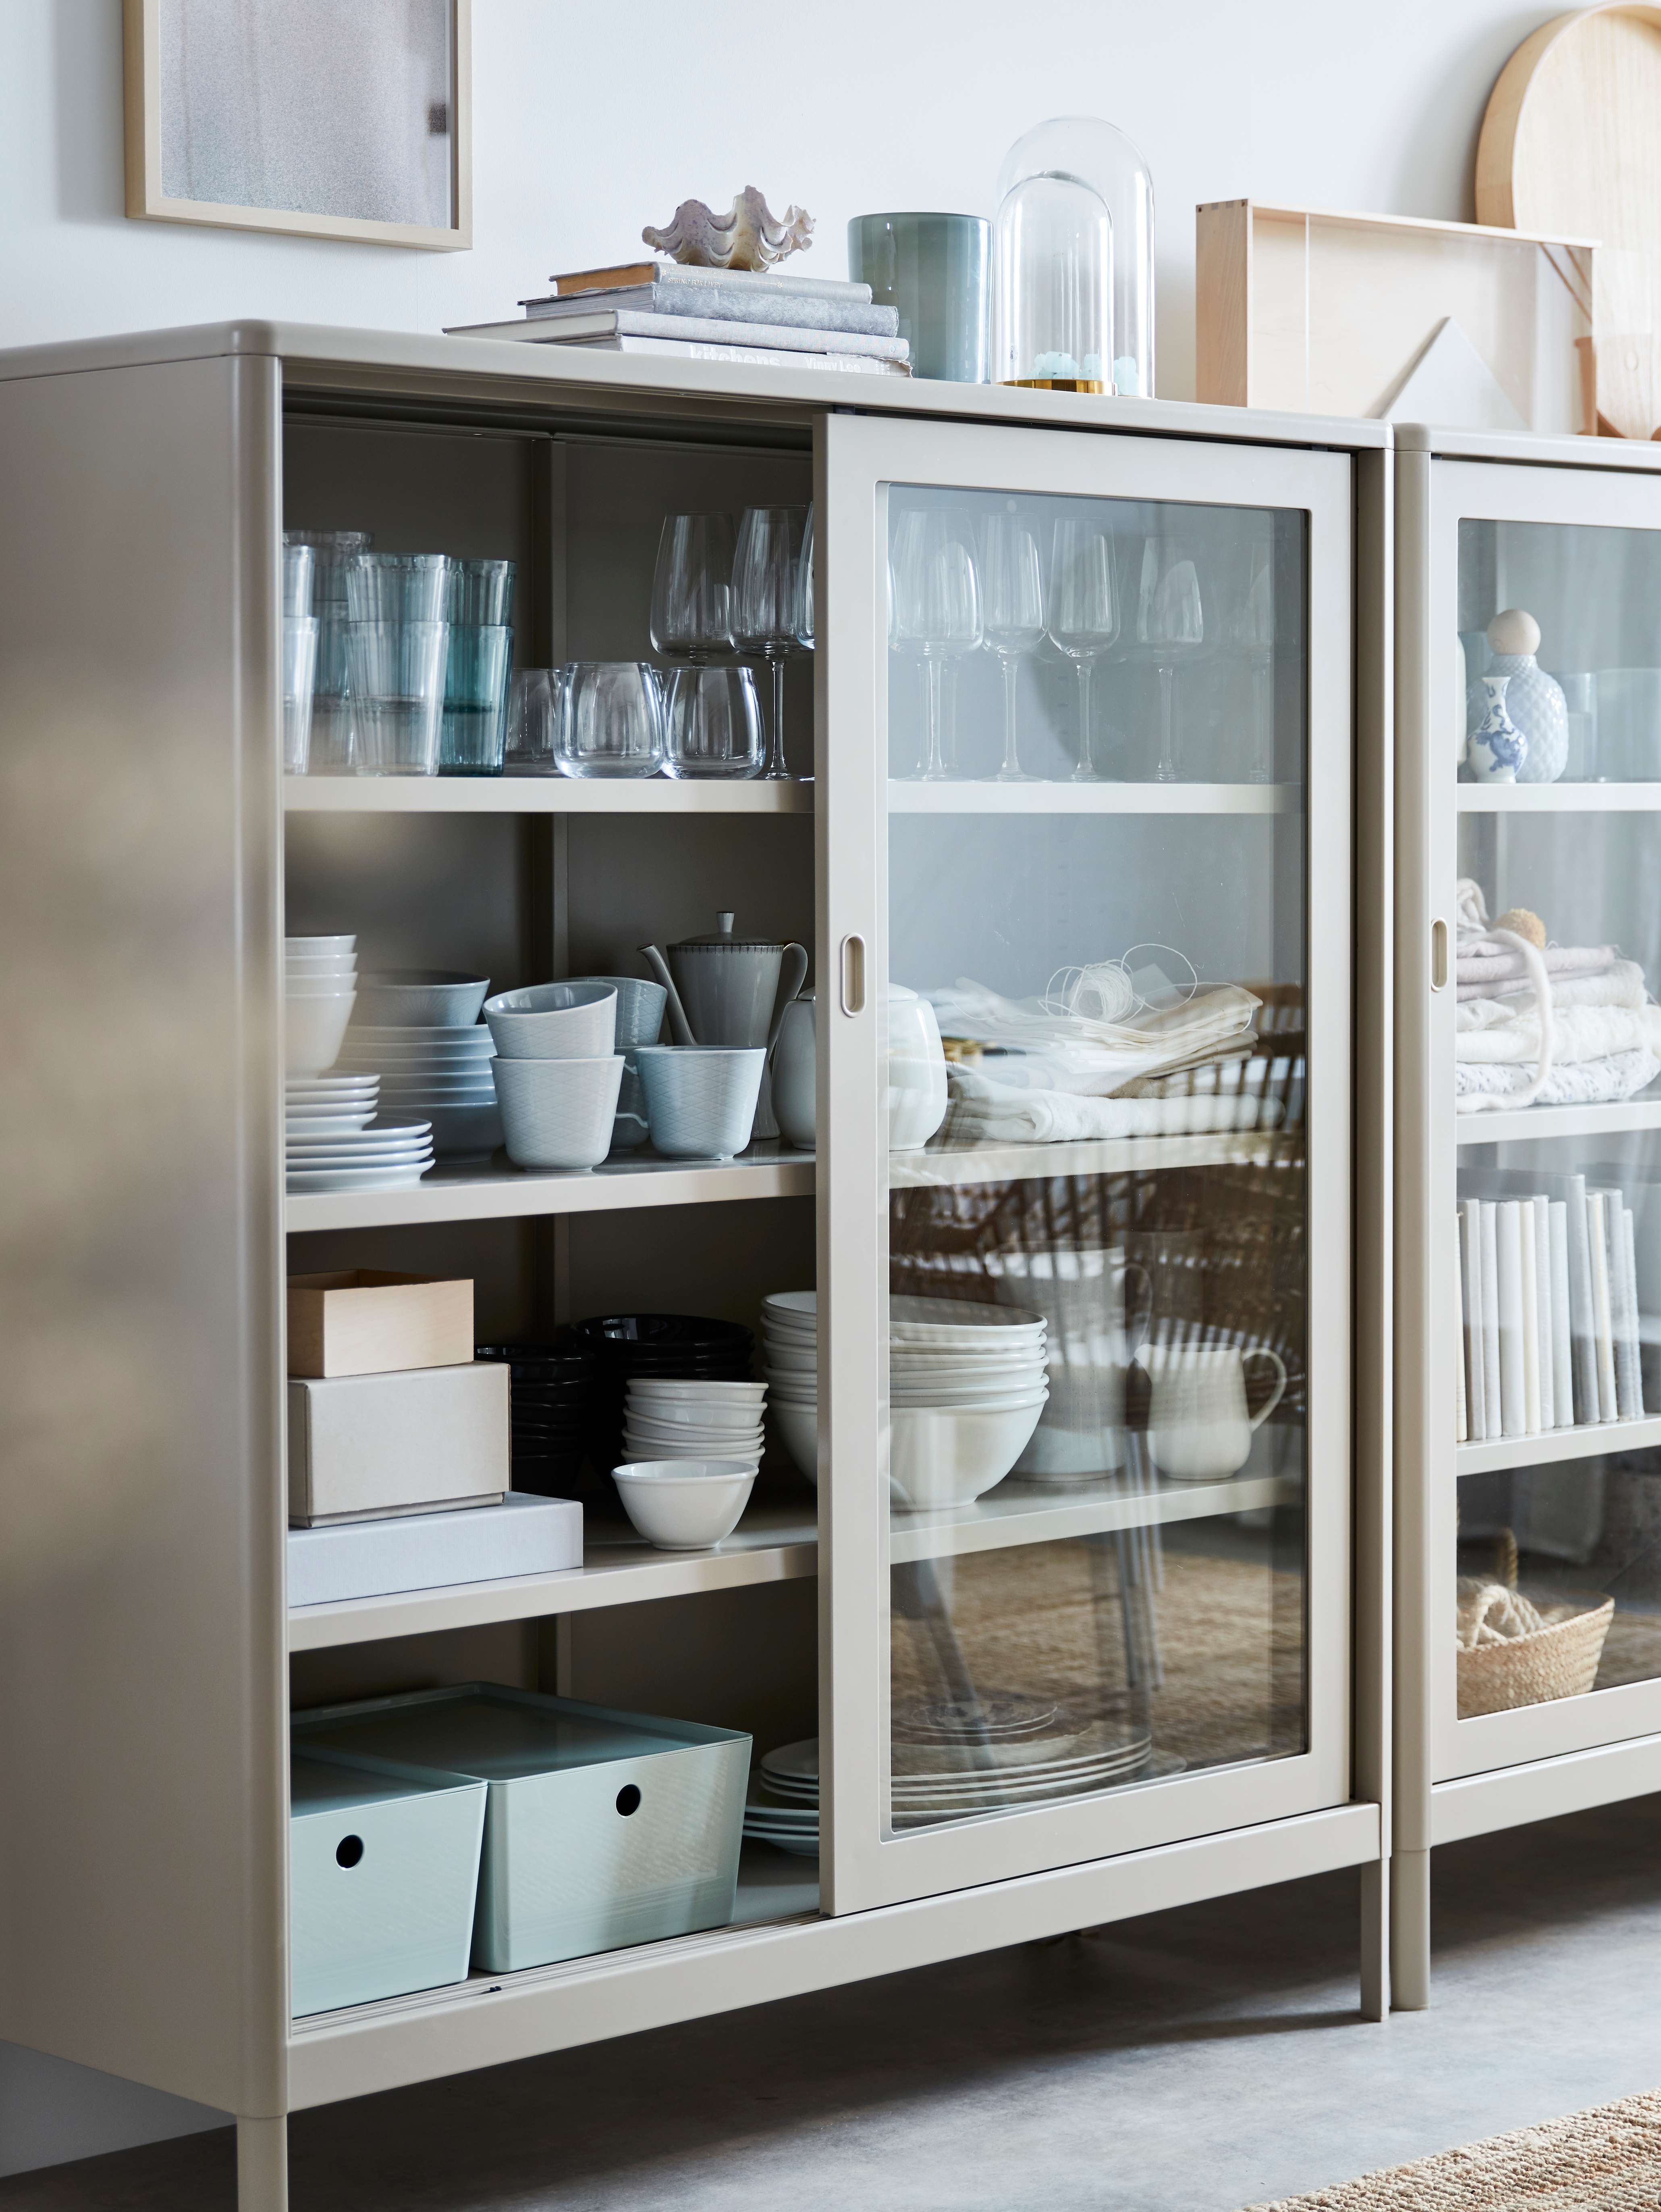 A beige IDÅSEN cabinet with sliding glass doors holds glasses, tableware and storage boxes, with books and decor on the top.